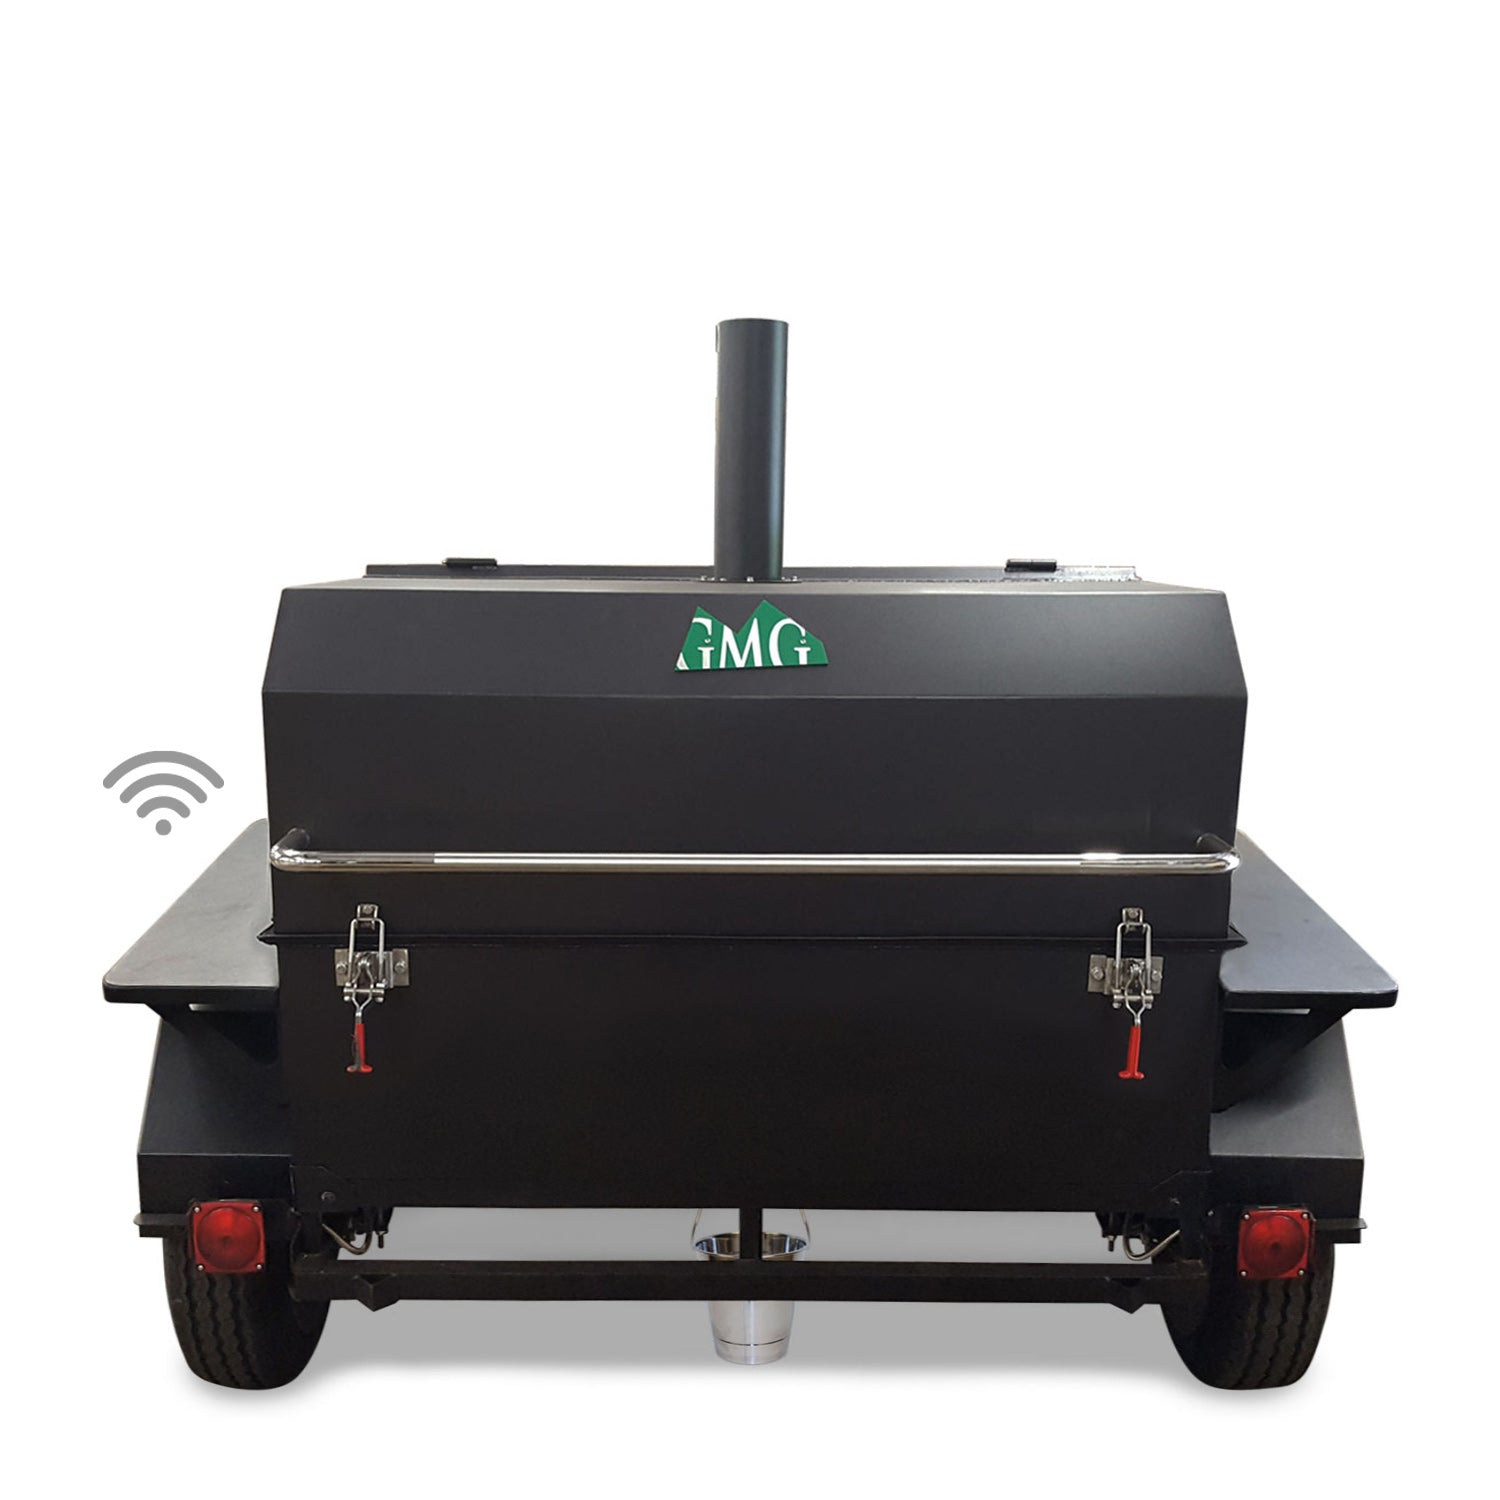 Green Mountain Grills Big Pig Trailer Rig